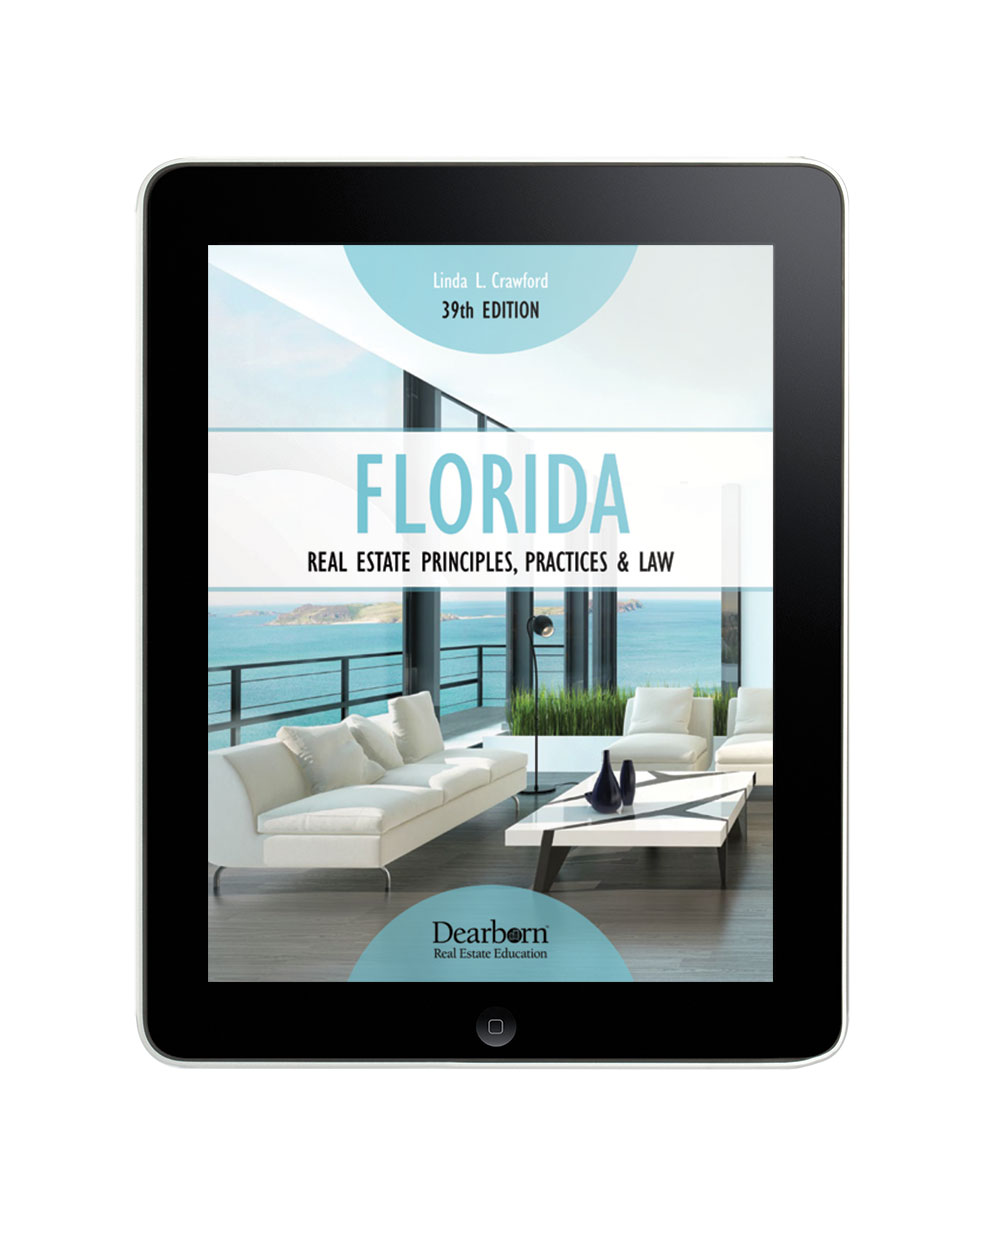 Florida Real Estate Principles, Practices & Law 39th Edition (eBook) – Dearborn  Real Estate Education